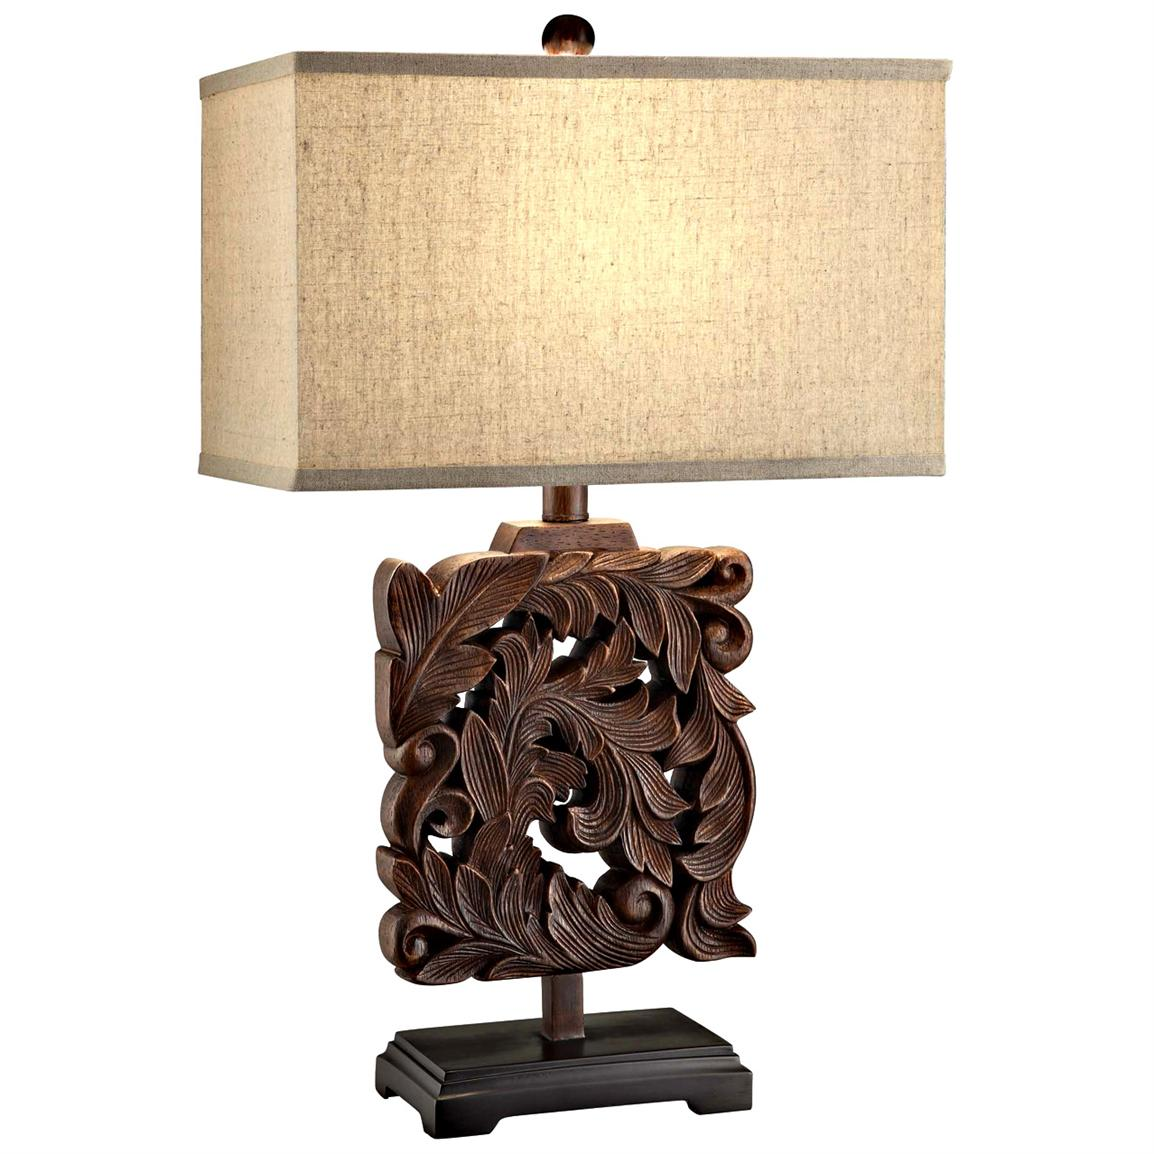 Crestview® Carved Artifact Table Lamp